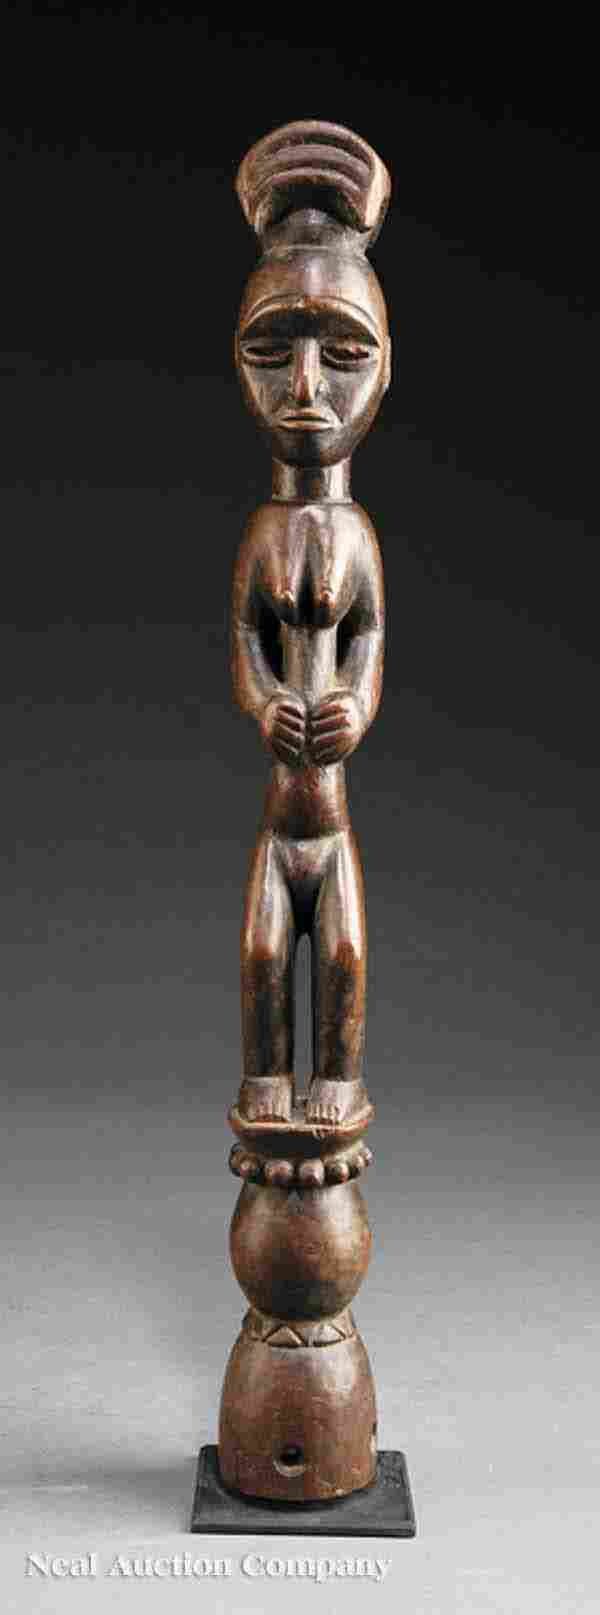 An Oron or Eket Carved Wood Figural Staff Finial